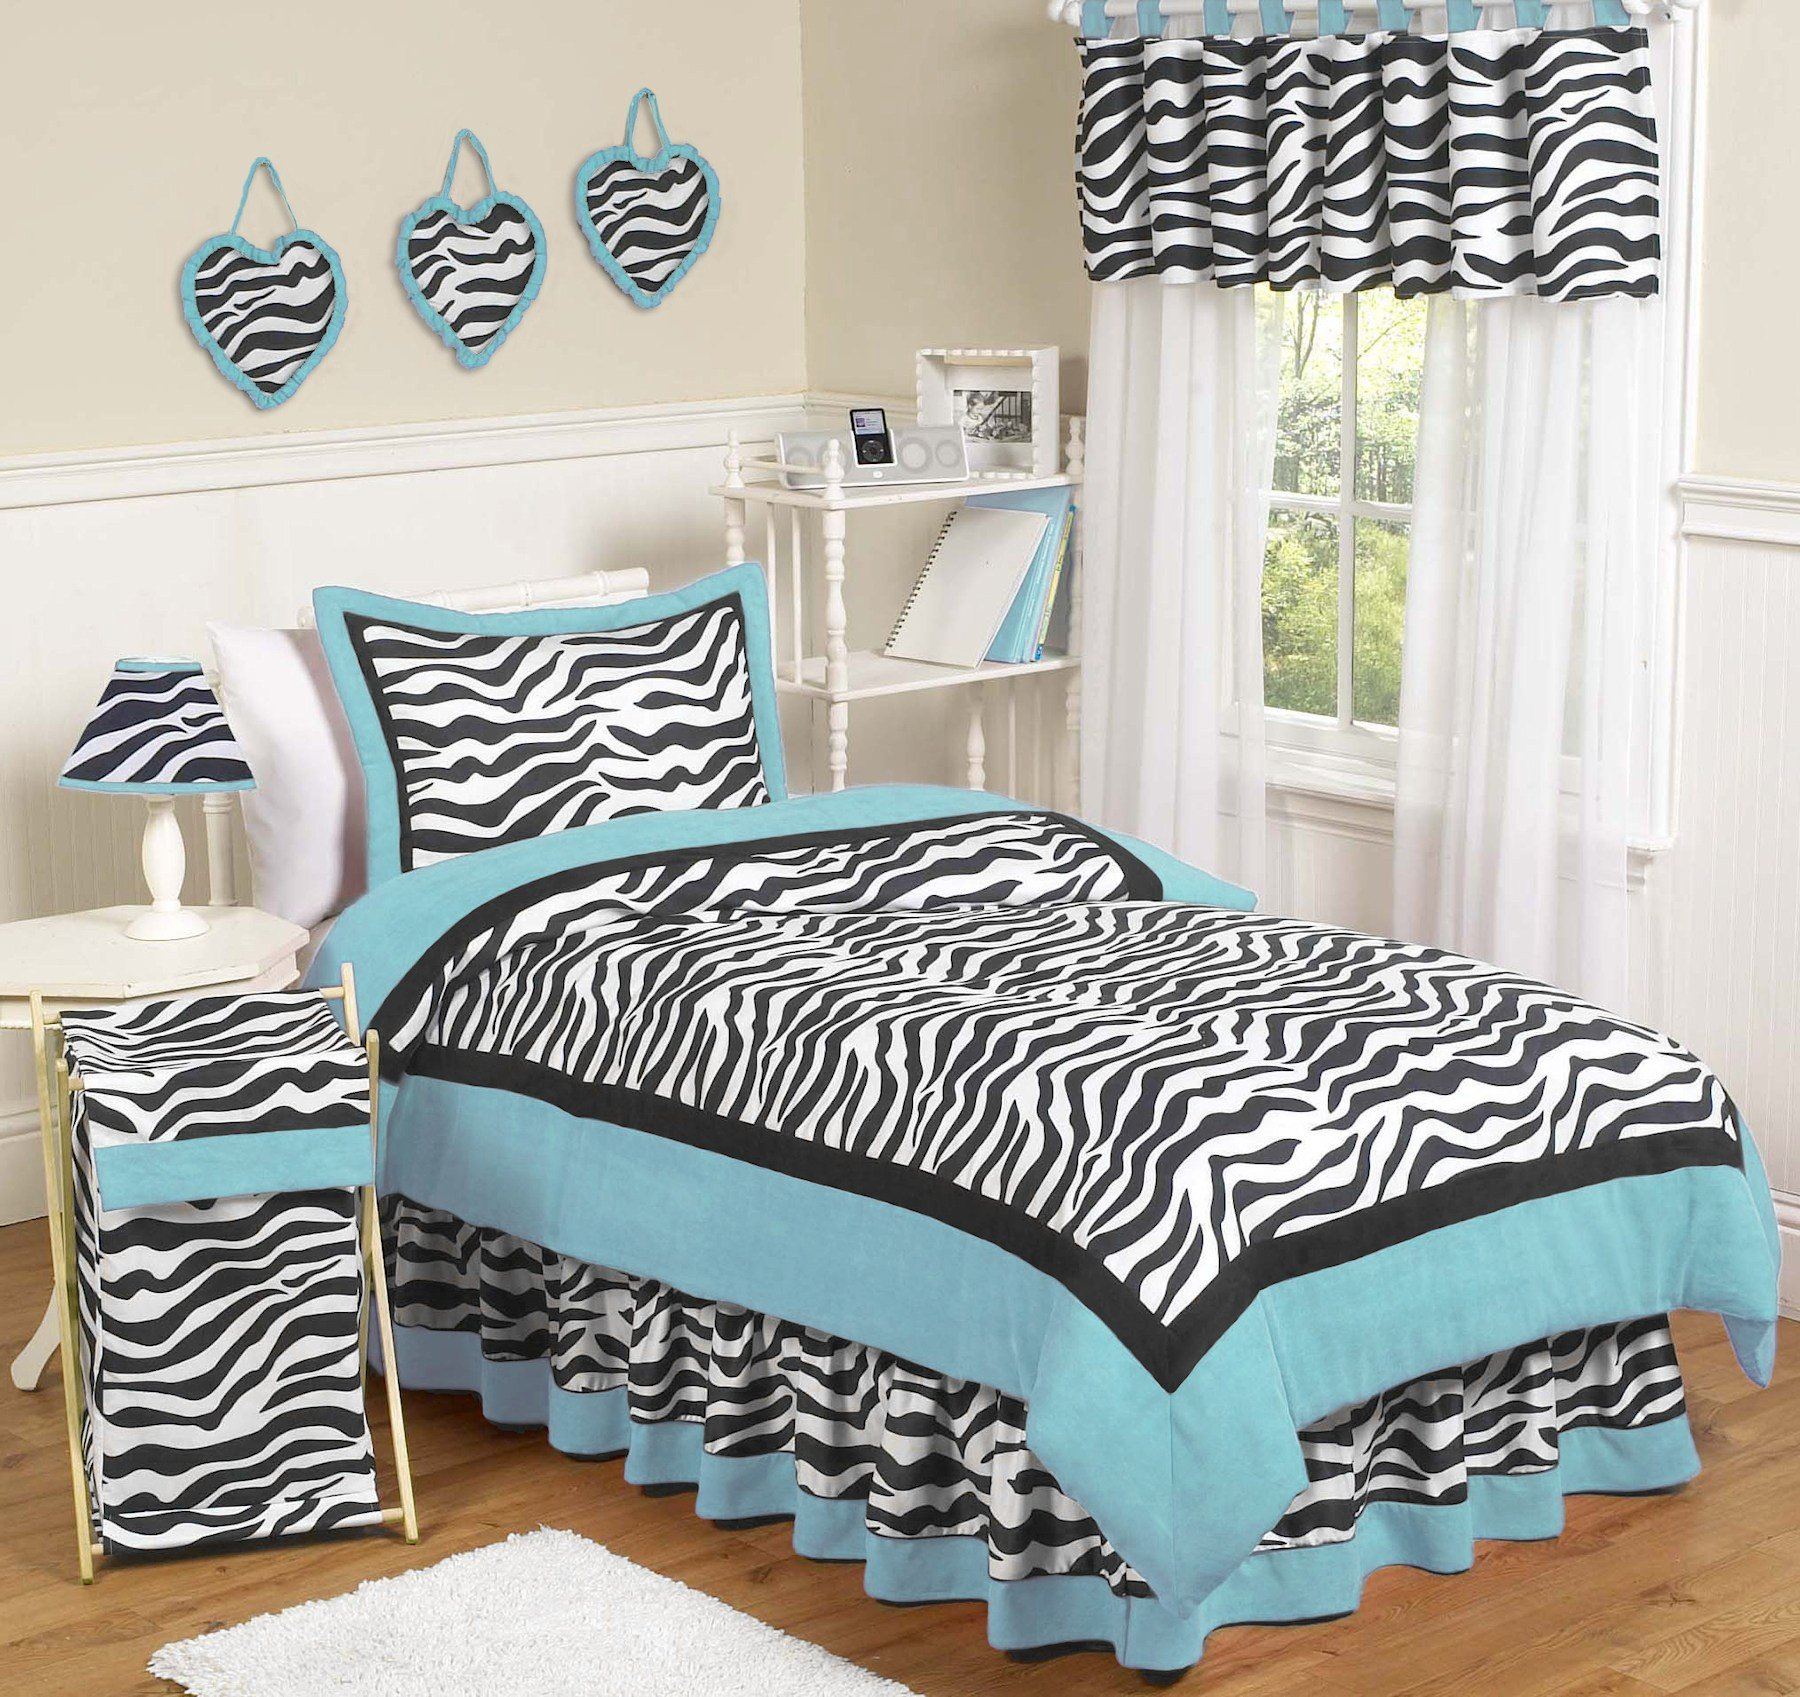 Best Blue Zebra Bedding Full Queen 3Pc Comforter Set For Girls With Pictures